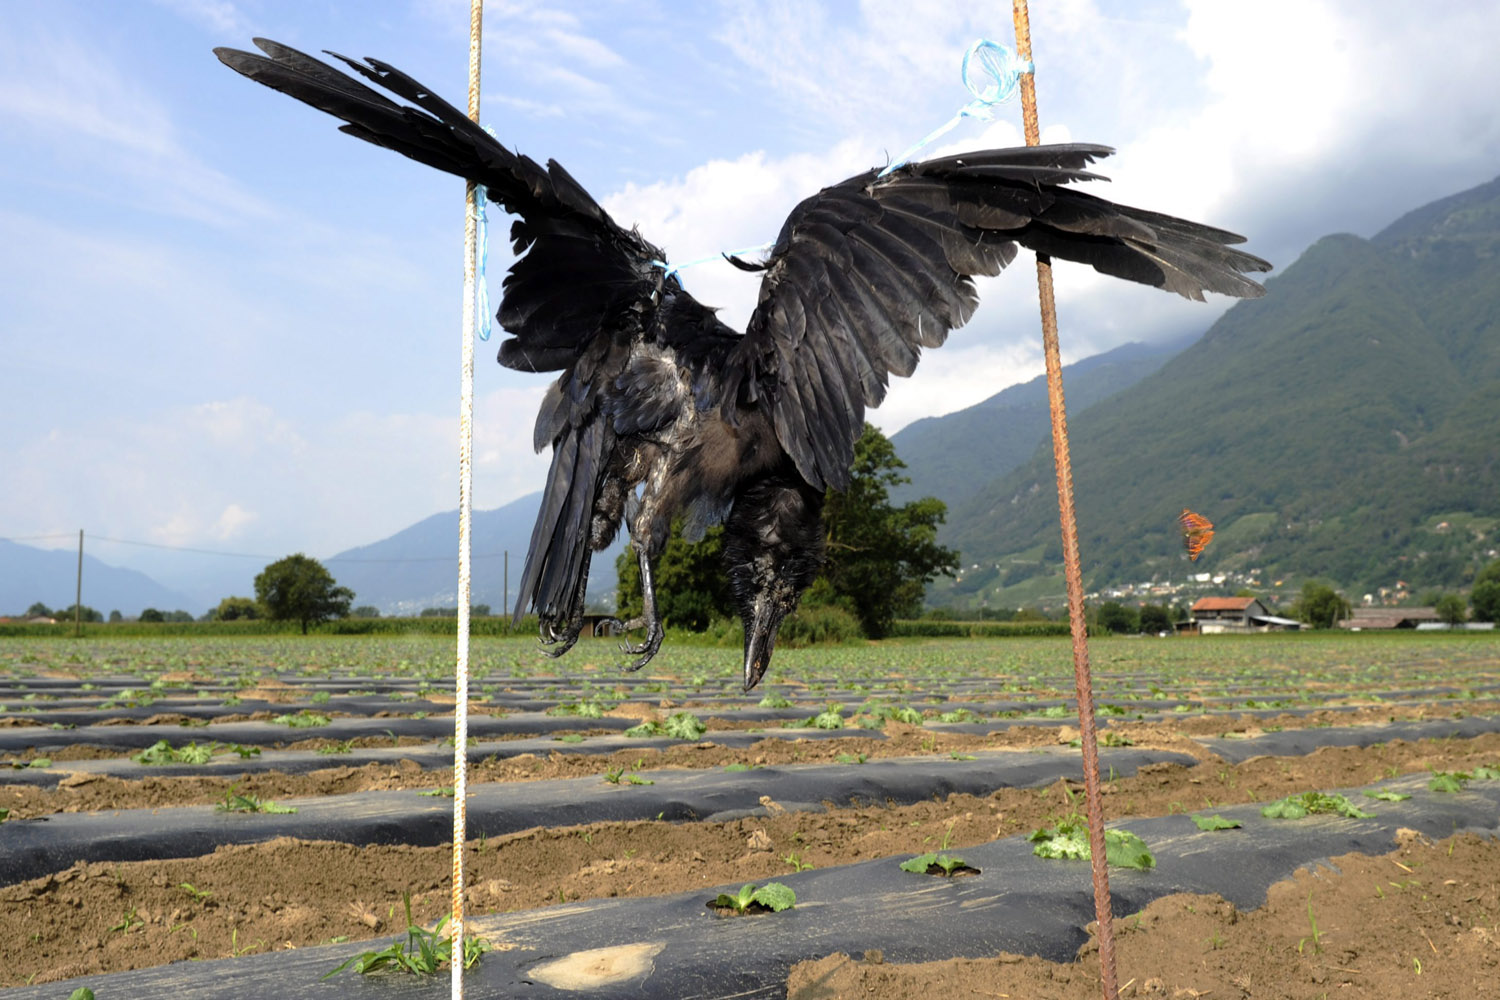 Aug. 14, 2012. A dead crow hangs from two sticks in a vegetable field at the Magadino plane, southern Switzerland. Vegetable farmers have hung up ten dead crows to scare off other hungry birds.